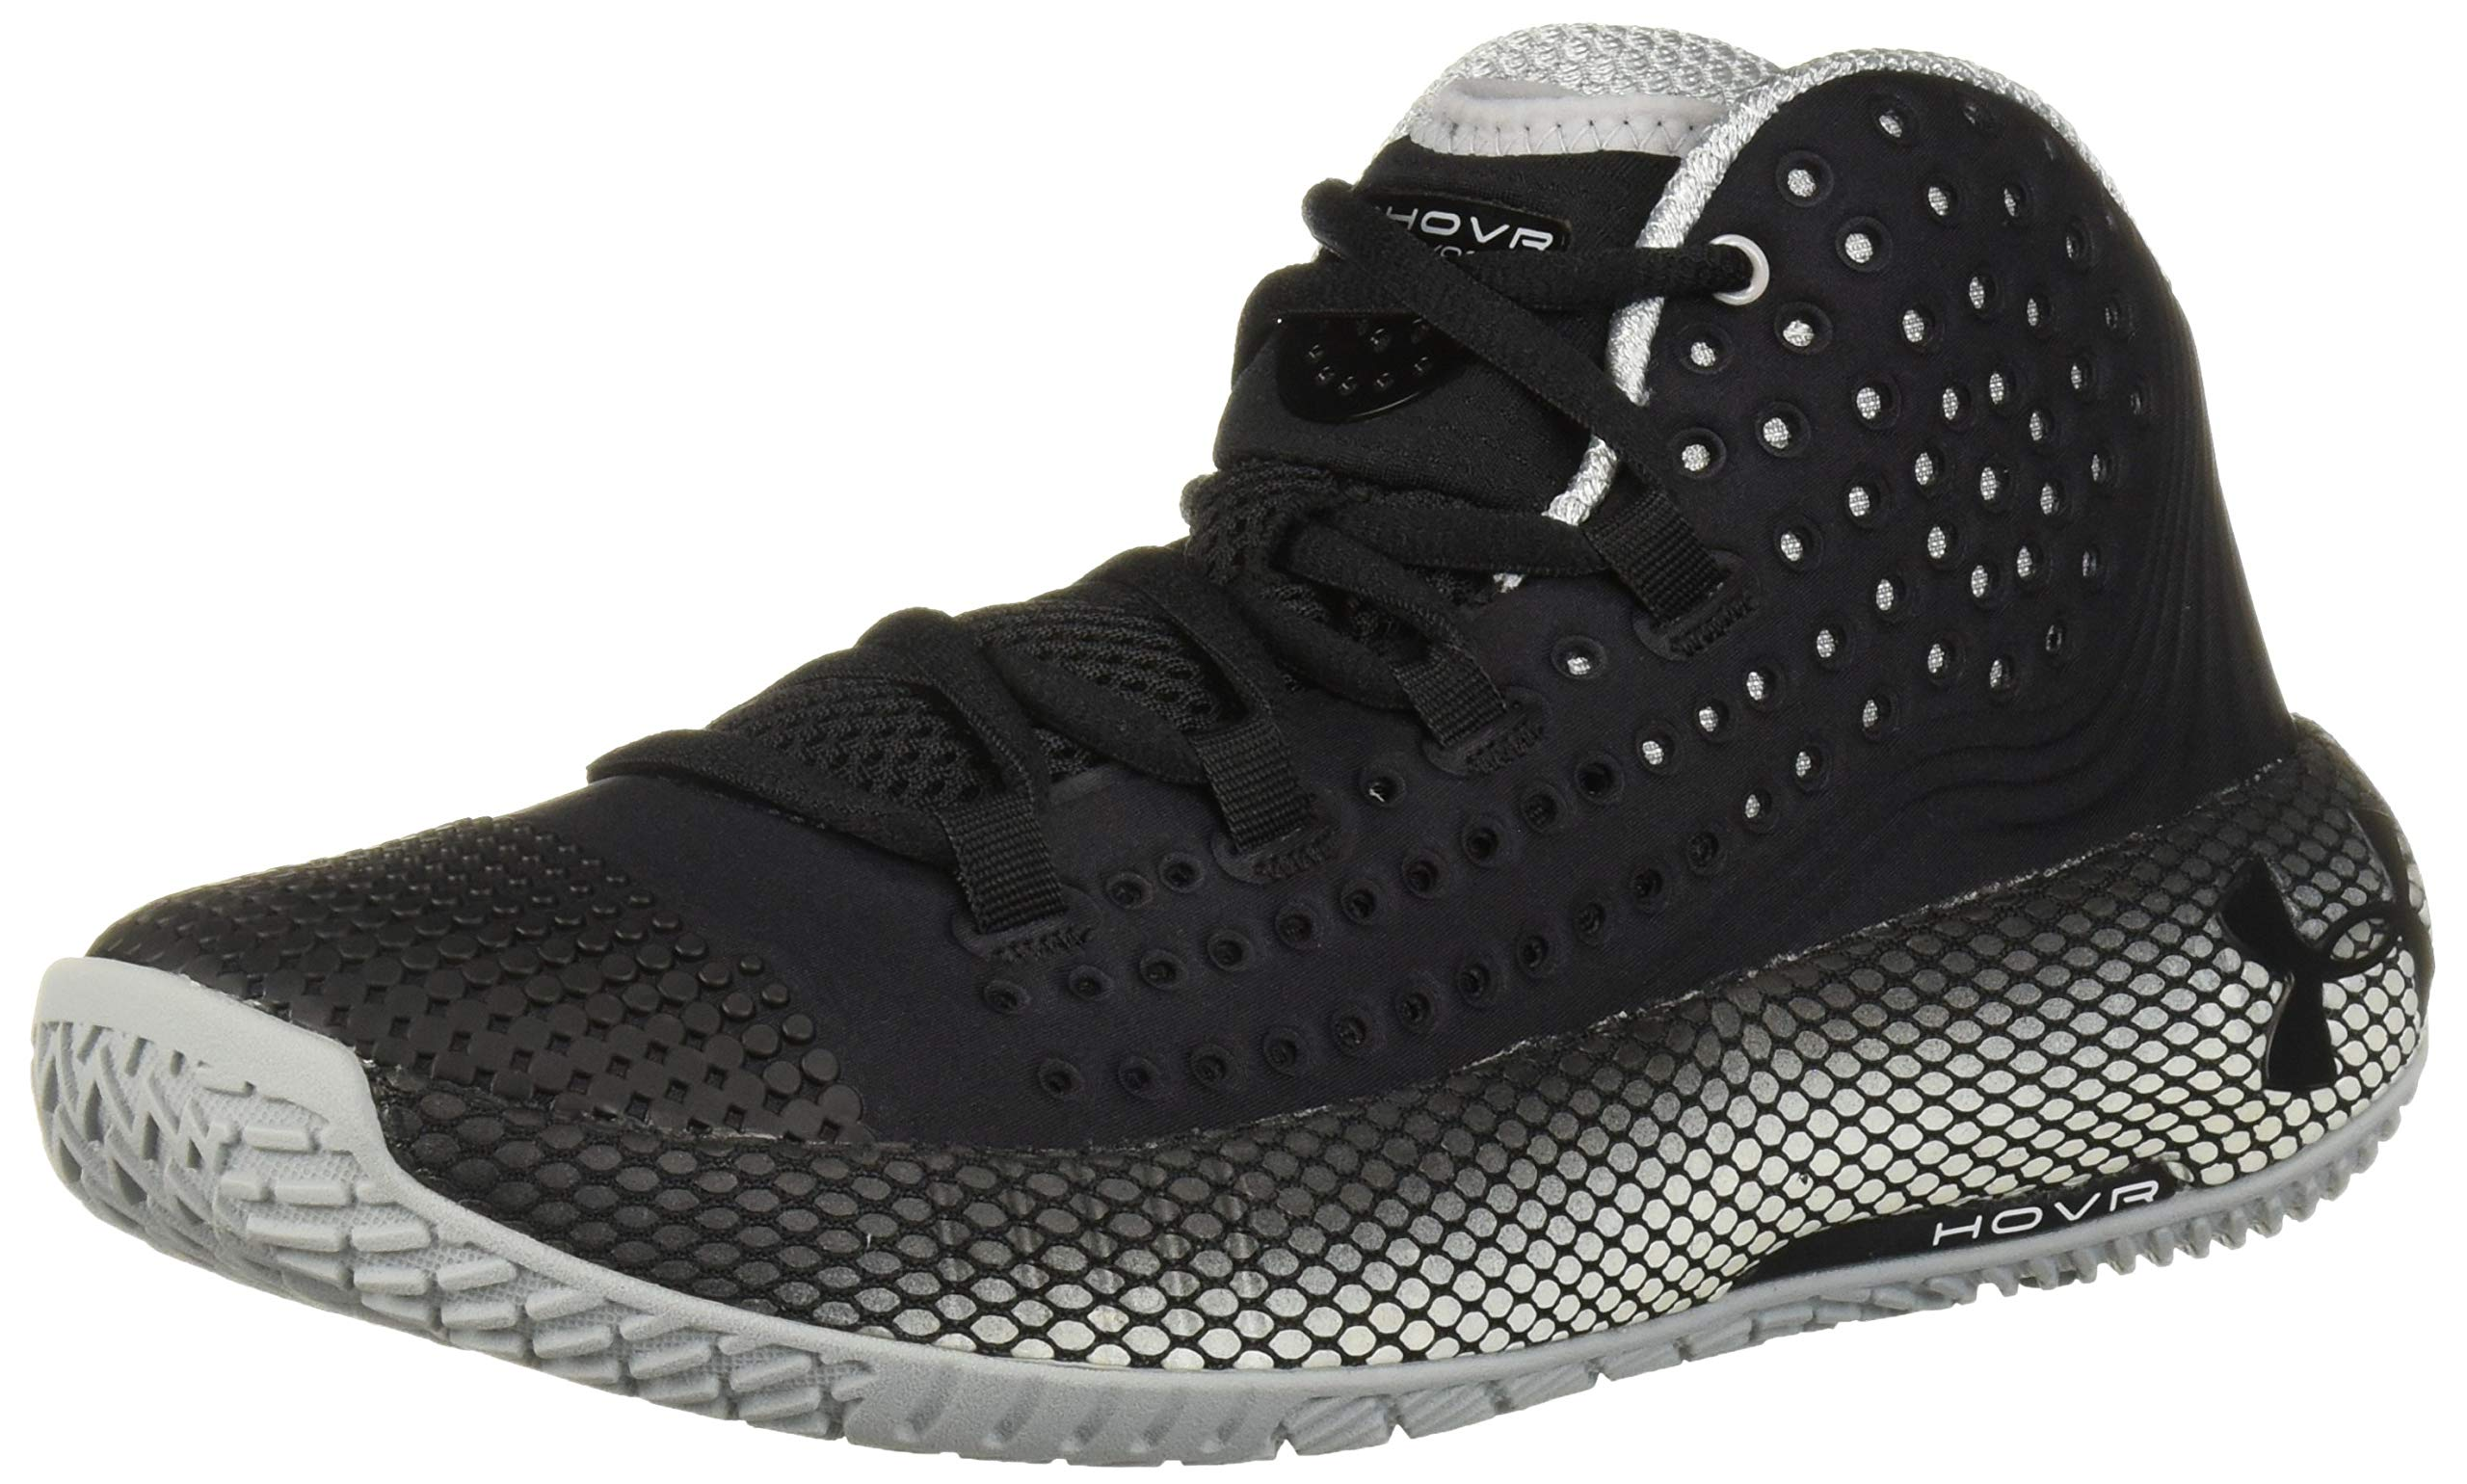 Under Armour Women's HOVR Havoc 2 Basketball Shoe, Black (001)/White, 9.5 by Under Armour